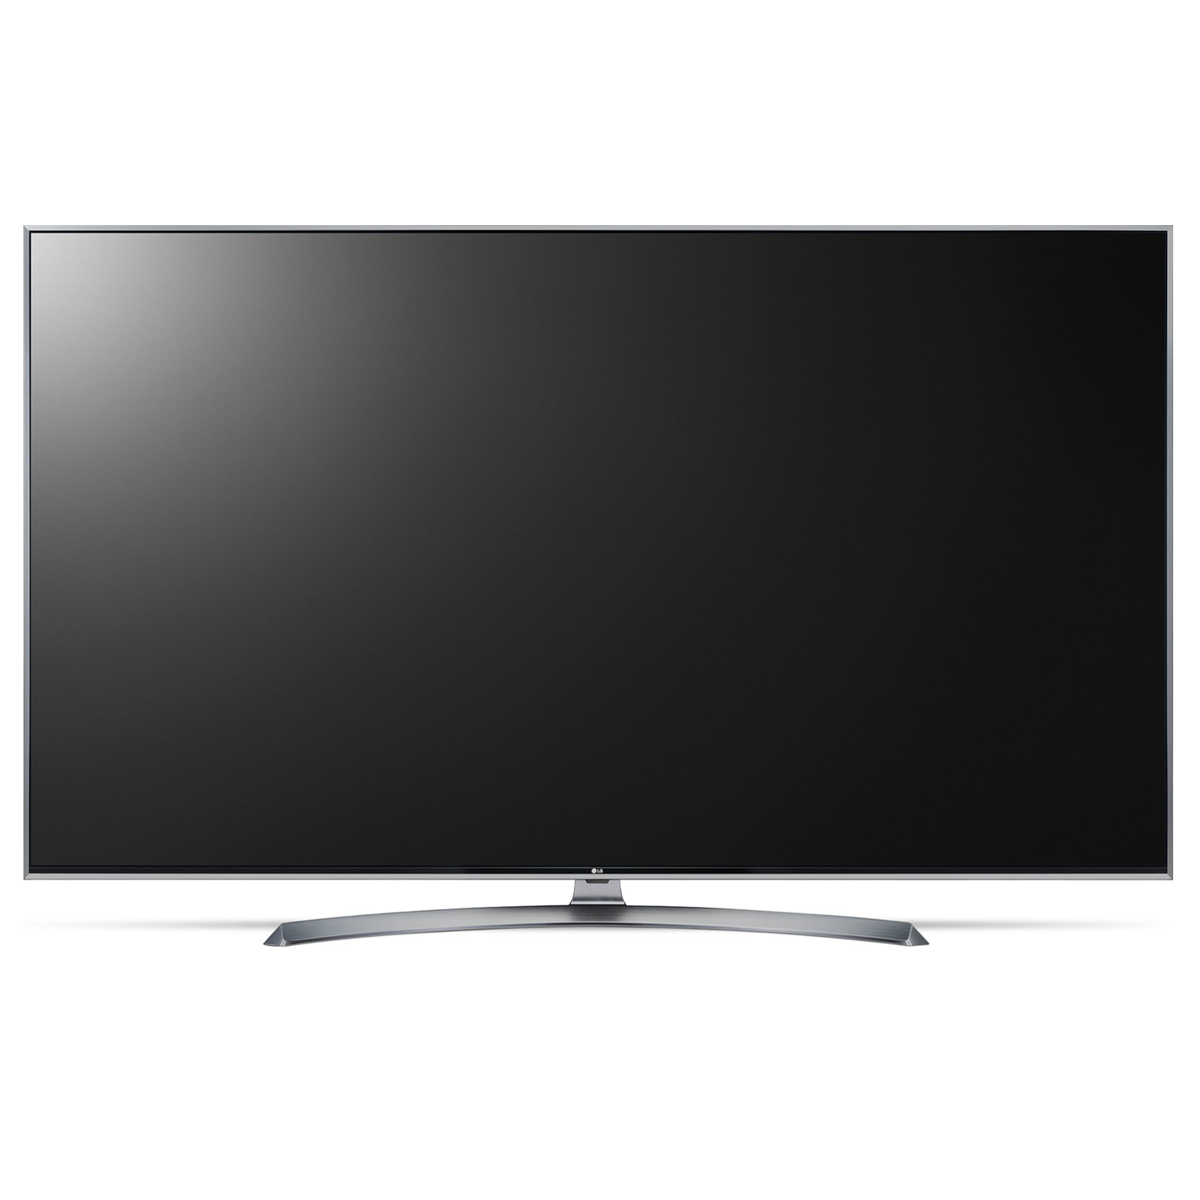 LG 49UJ752T 49 Inch 123cm Smart 4K Super UHD LED LCD TV